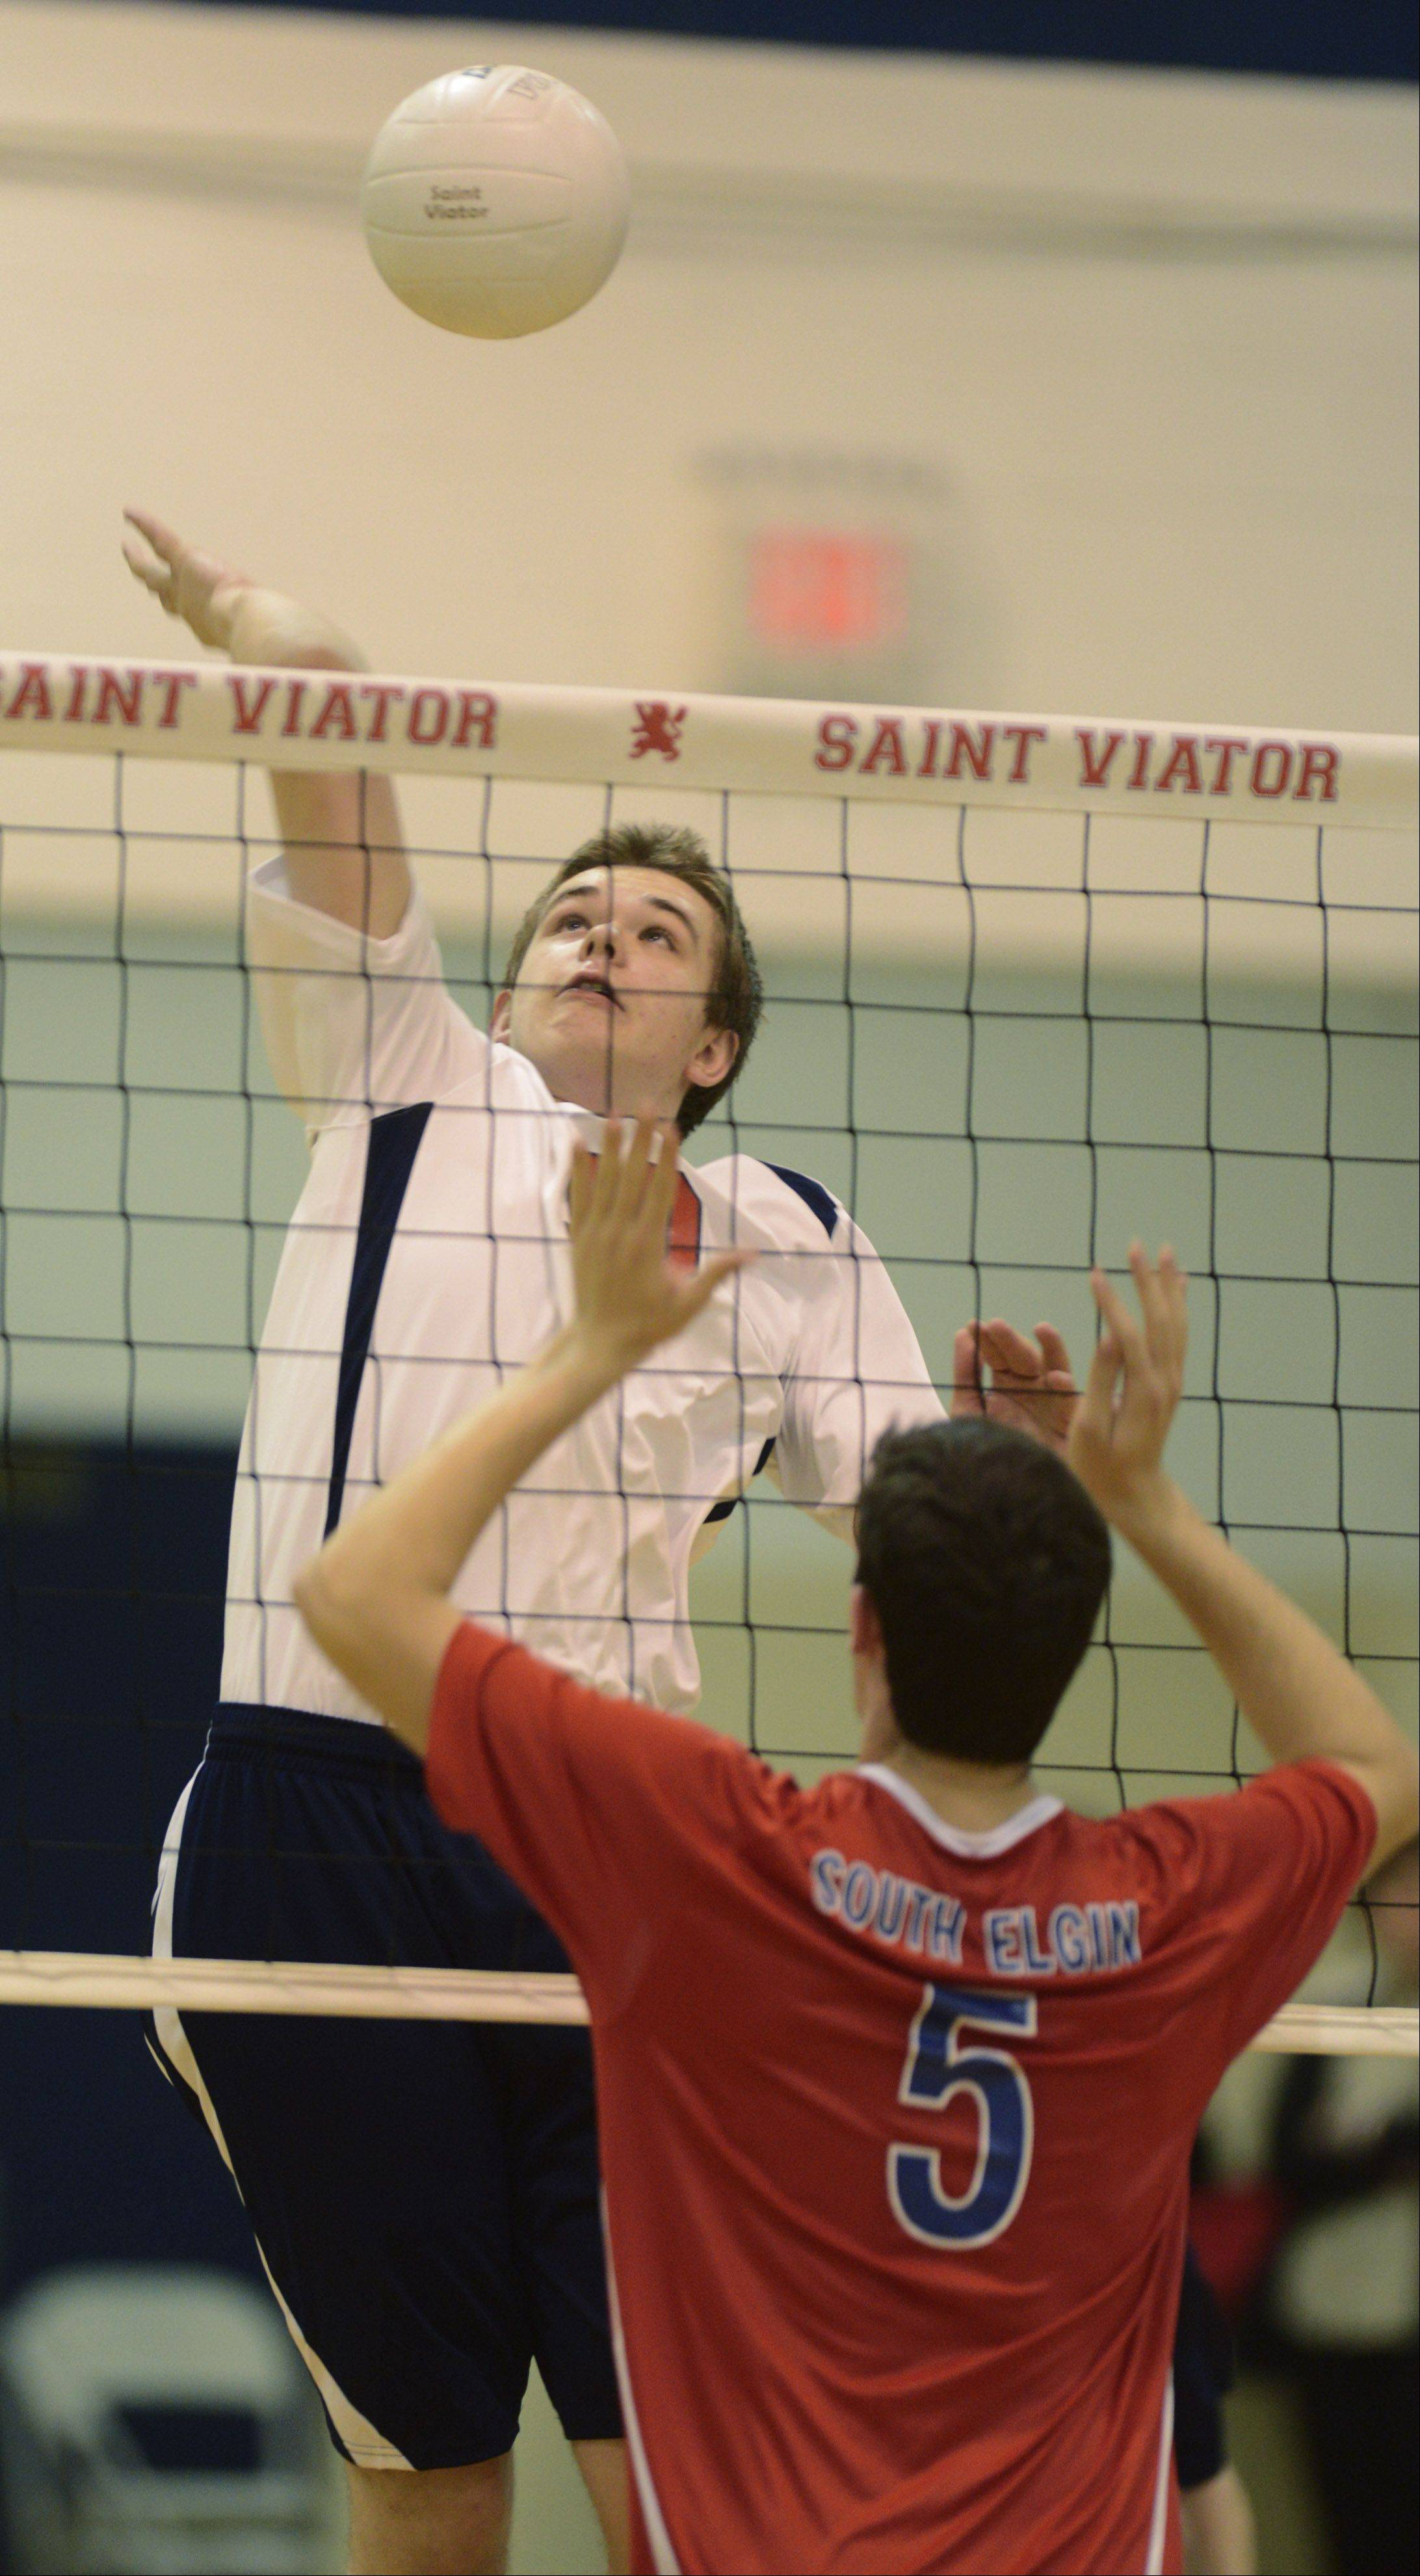 St. Viator's Matt Szleszynski leaps for a kill as South Elgin's Dan Gibadlo stands ready at the net during Wednesday's game in Arlington Heights.